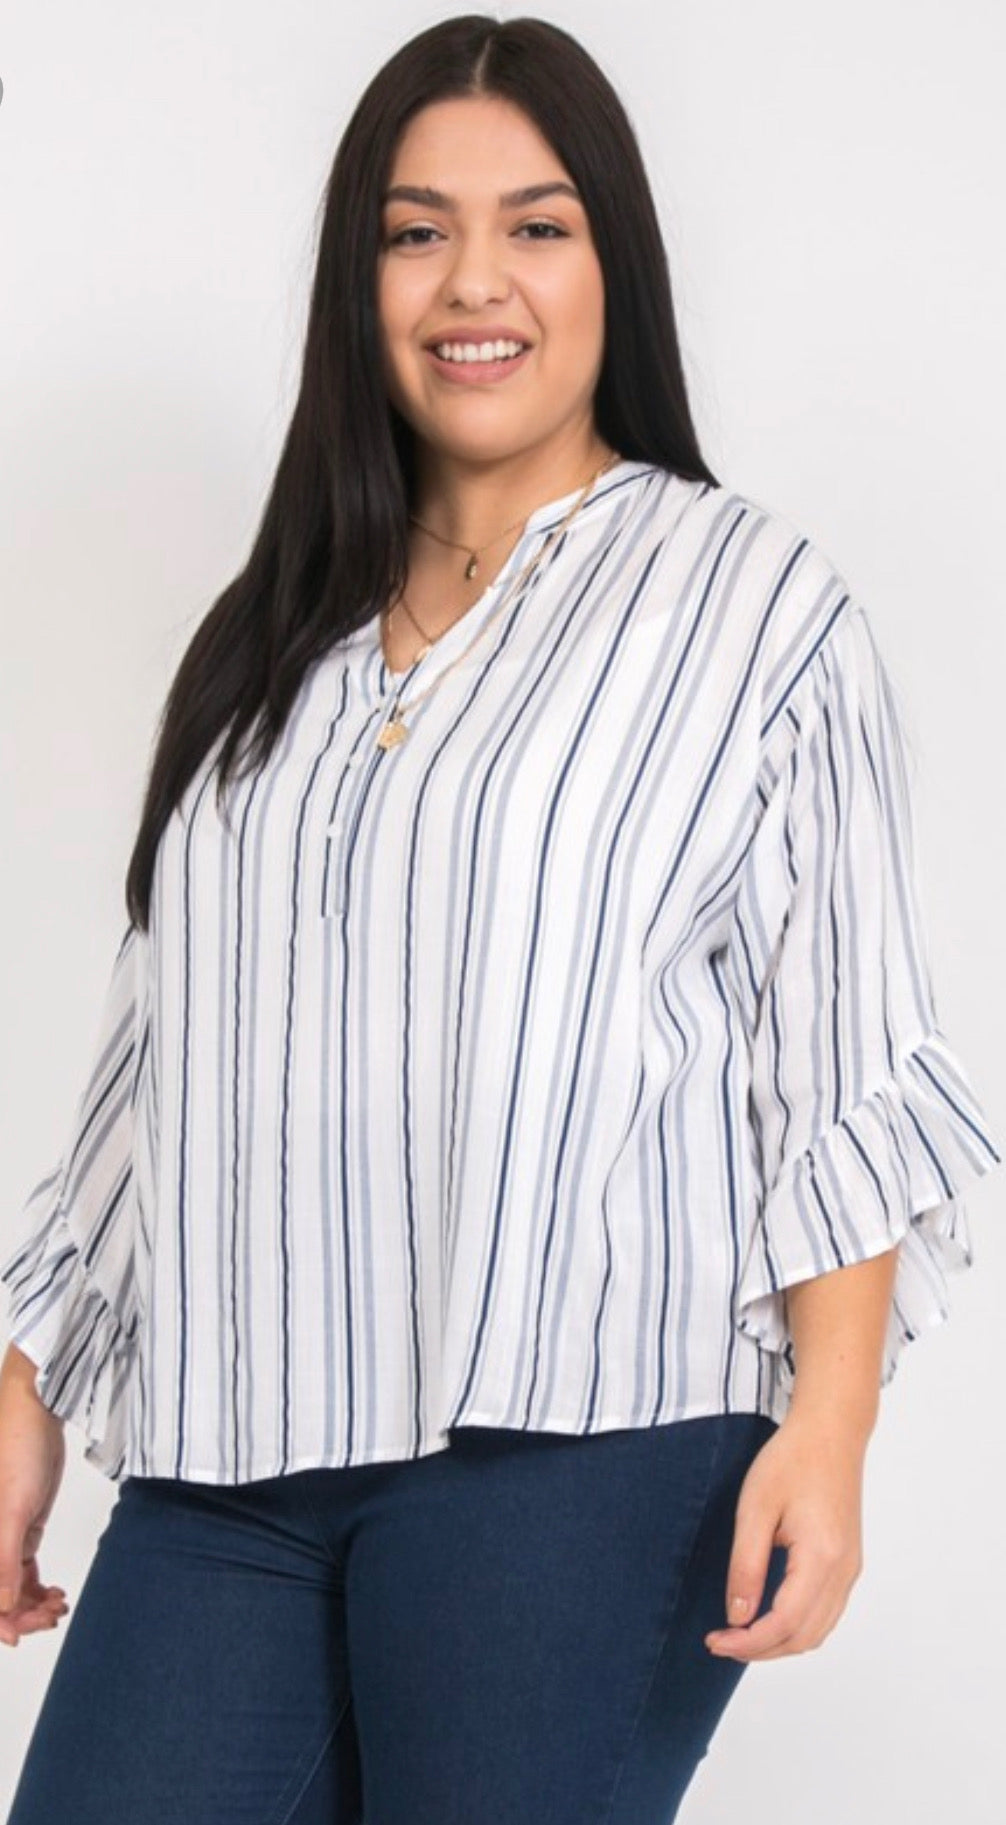 Navy & White Stripe Top with a Ruffel Accent | Cheeky Cactus